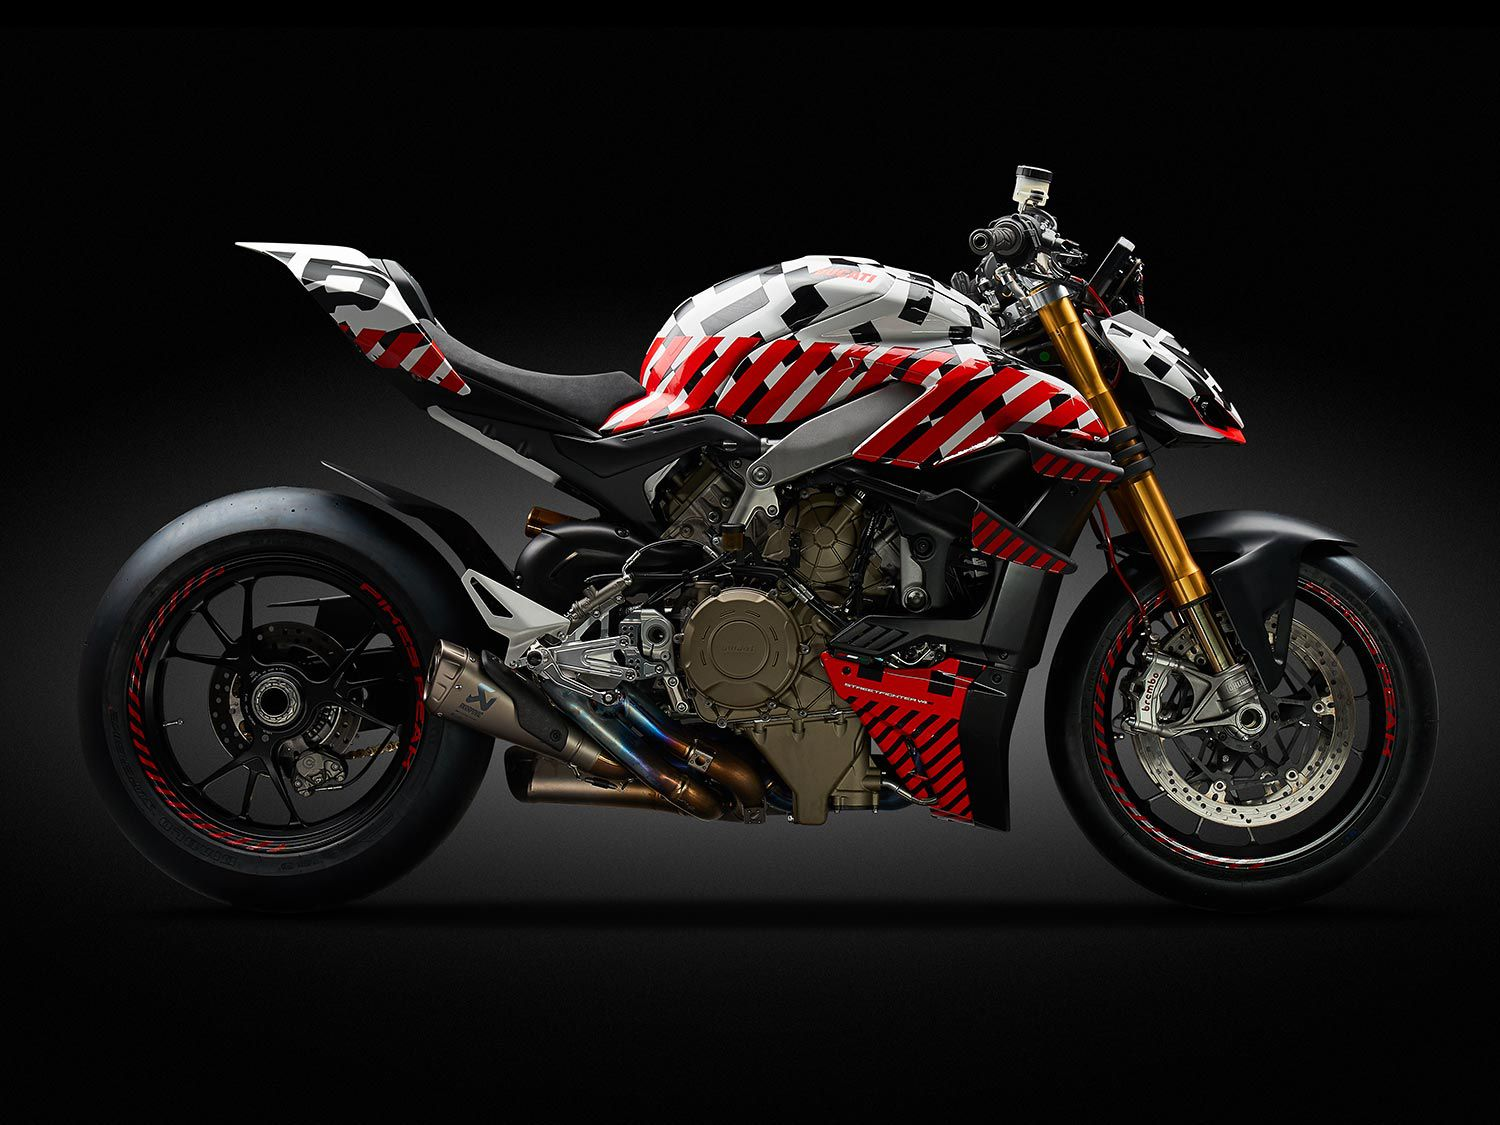 Ducati S 2020 Streetfighter V4 Breaks Cover Cycle World